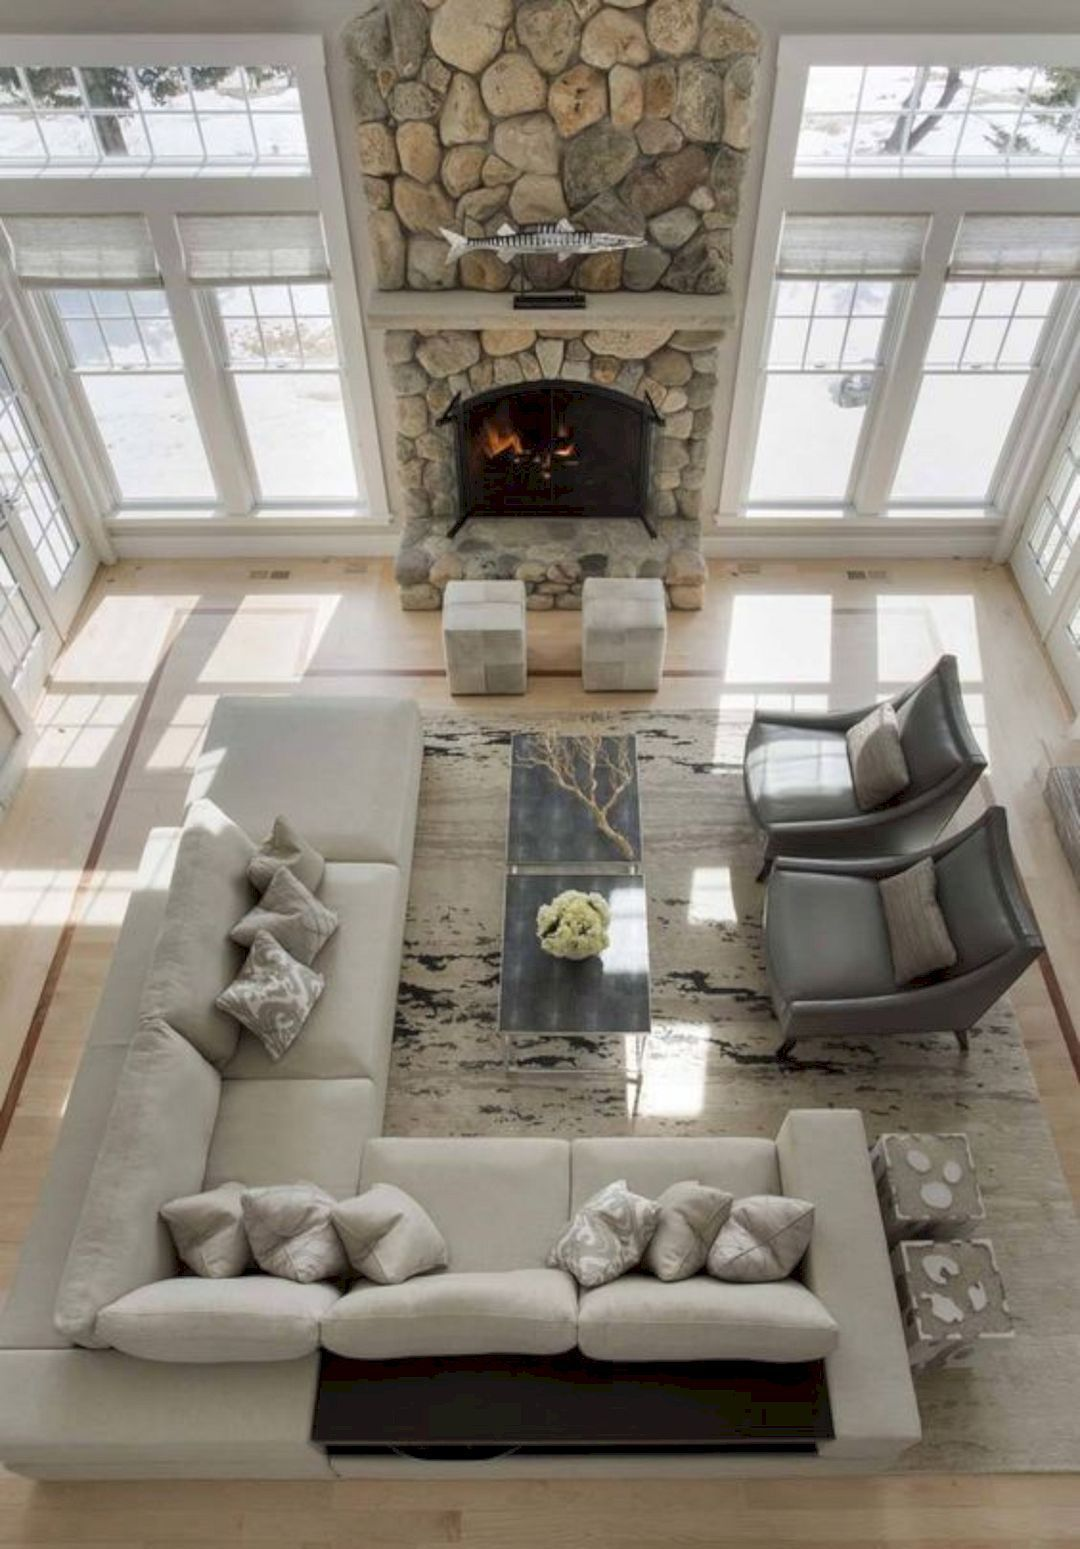 15 Amazing Furniture Layout Ideas To Arrange Your Family Room